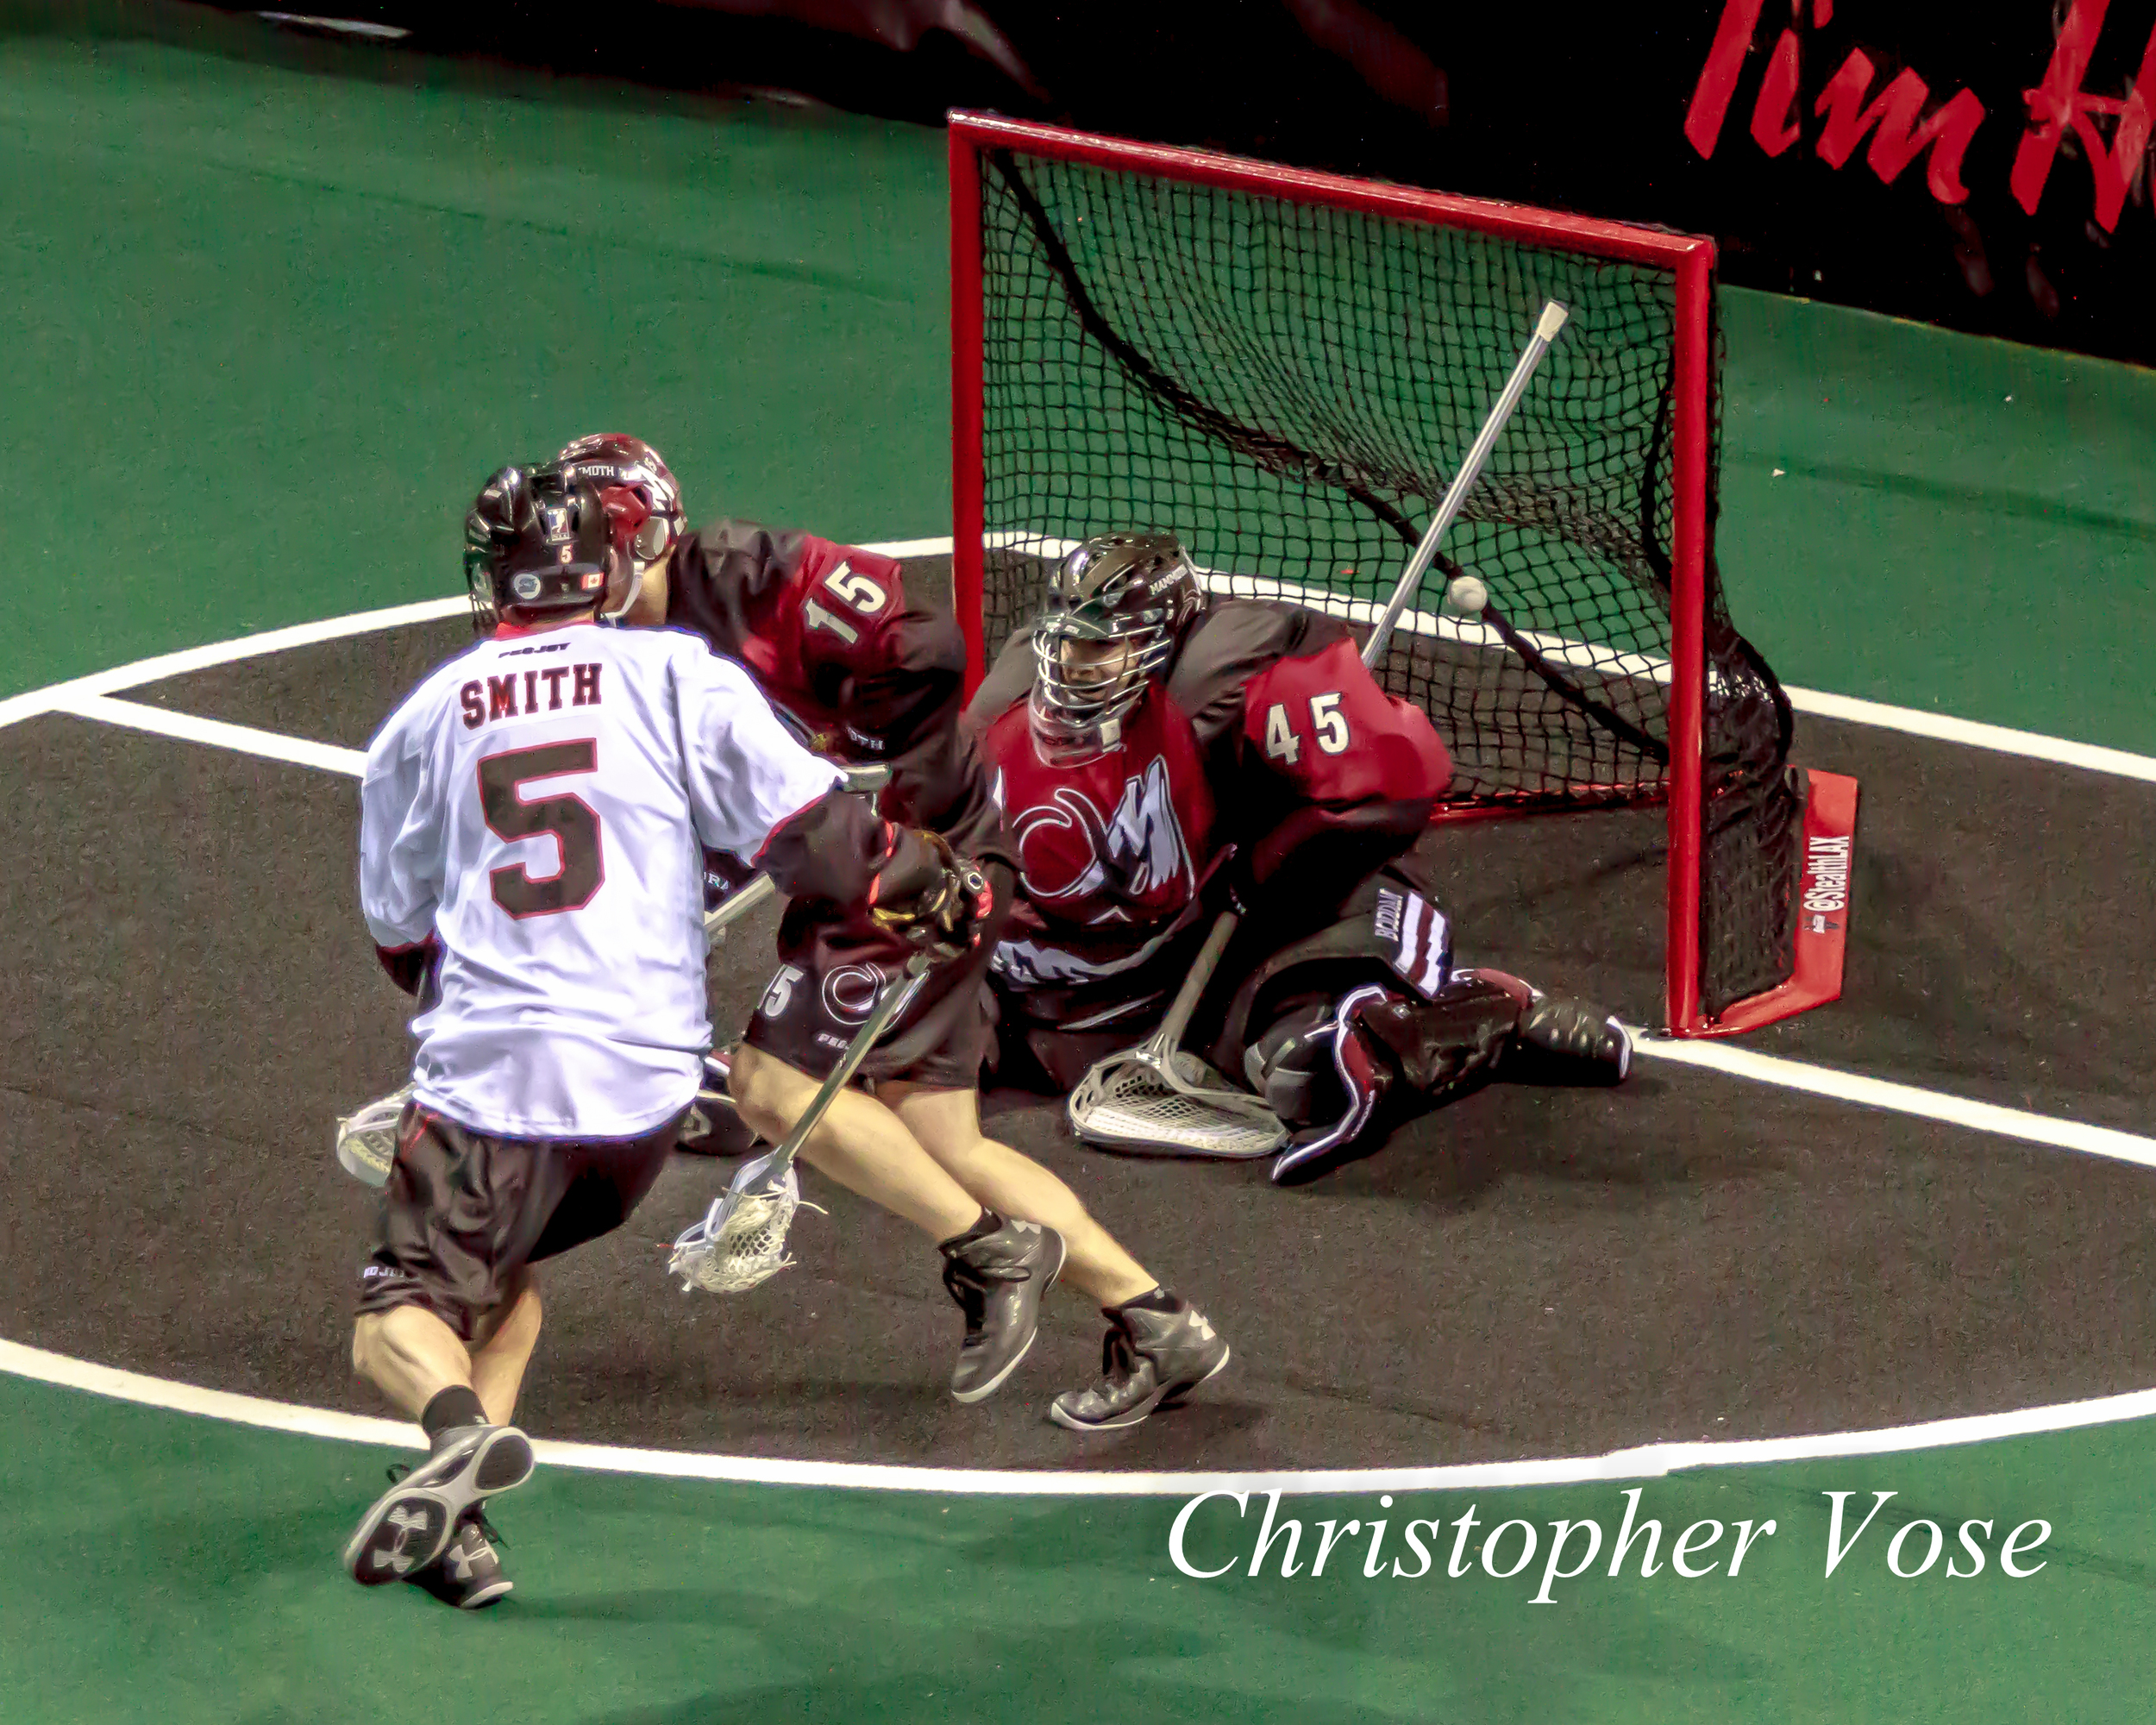 2014-01-17 Cliff Smith's First Goal.jpg